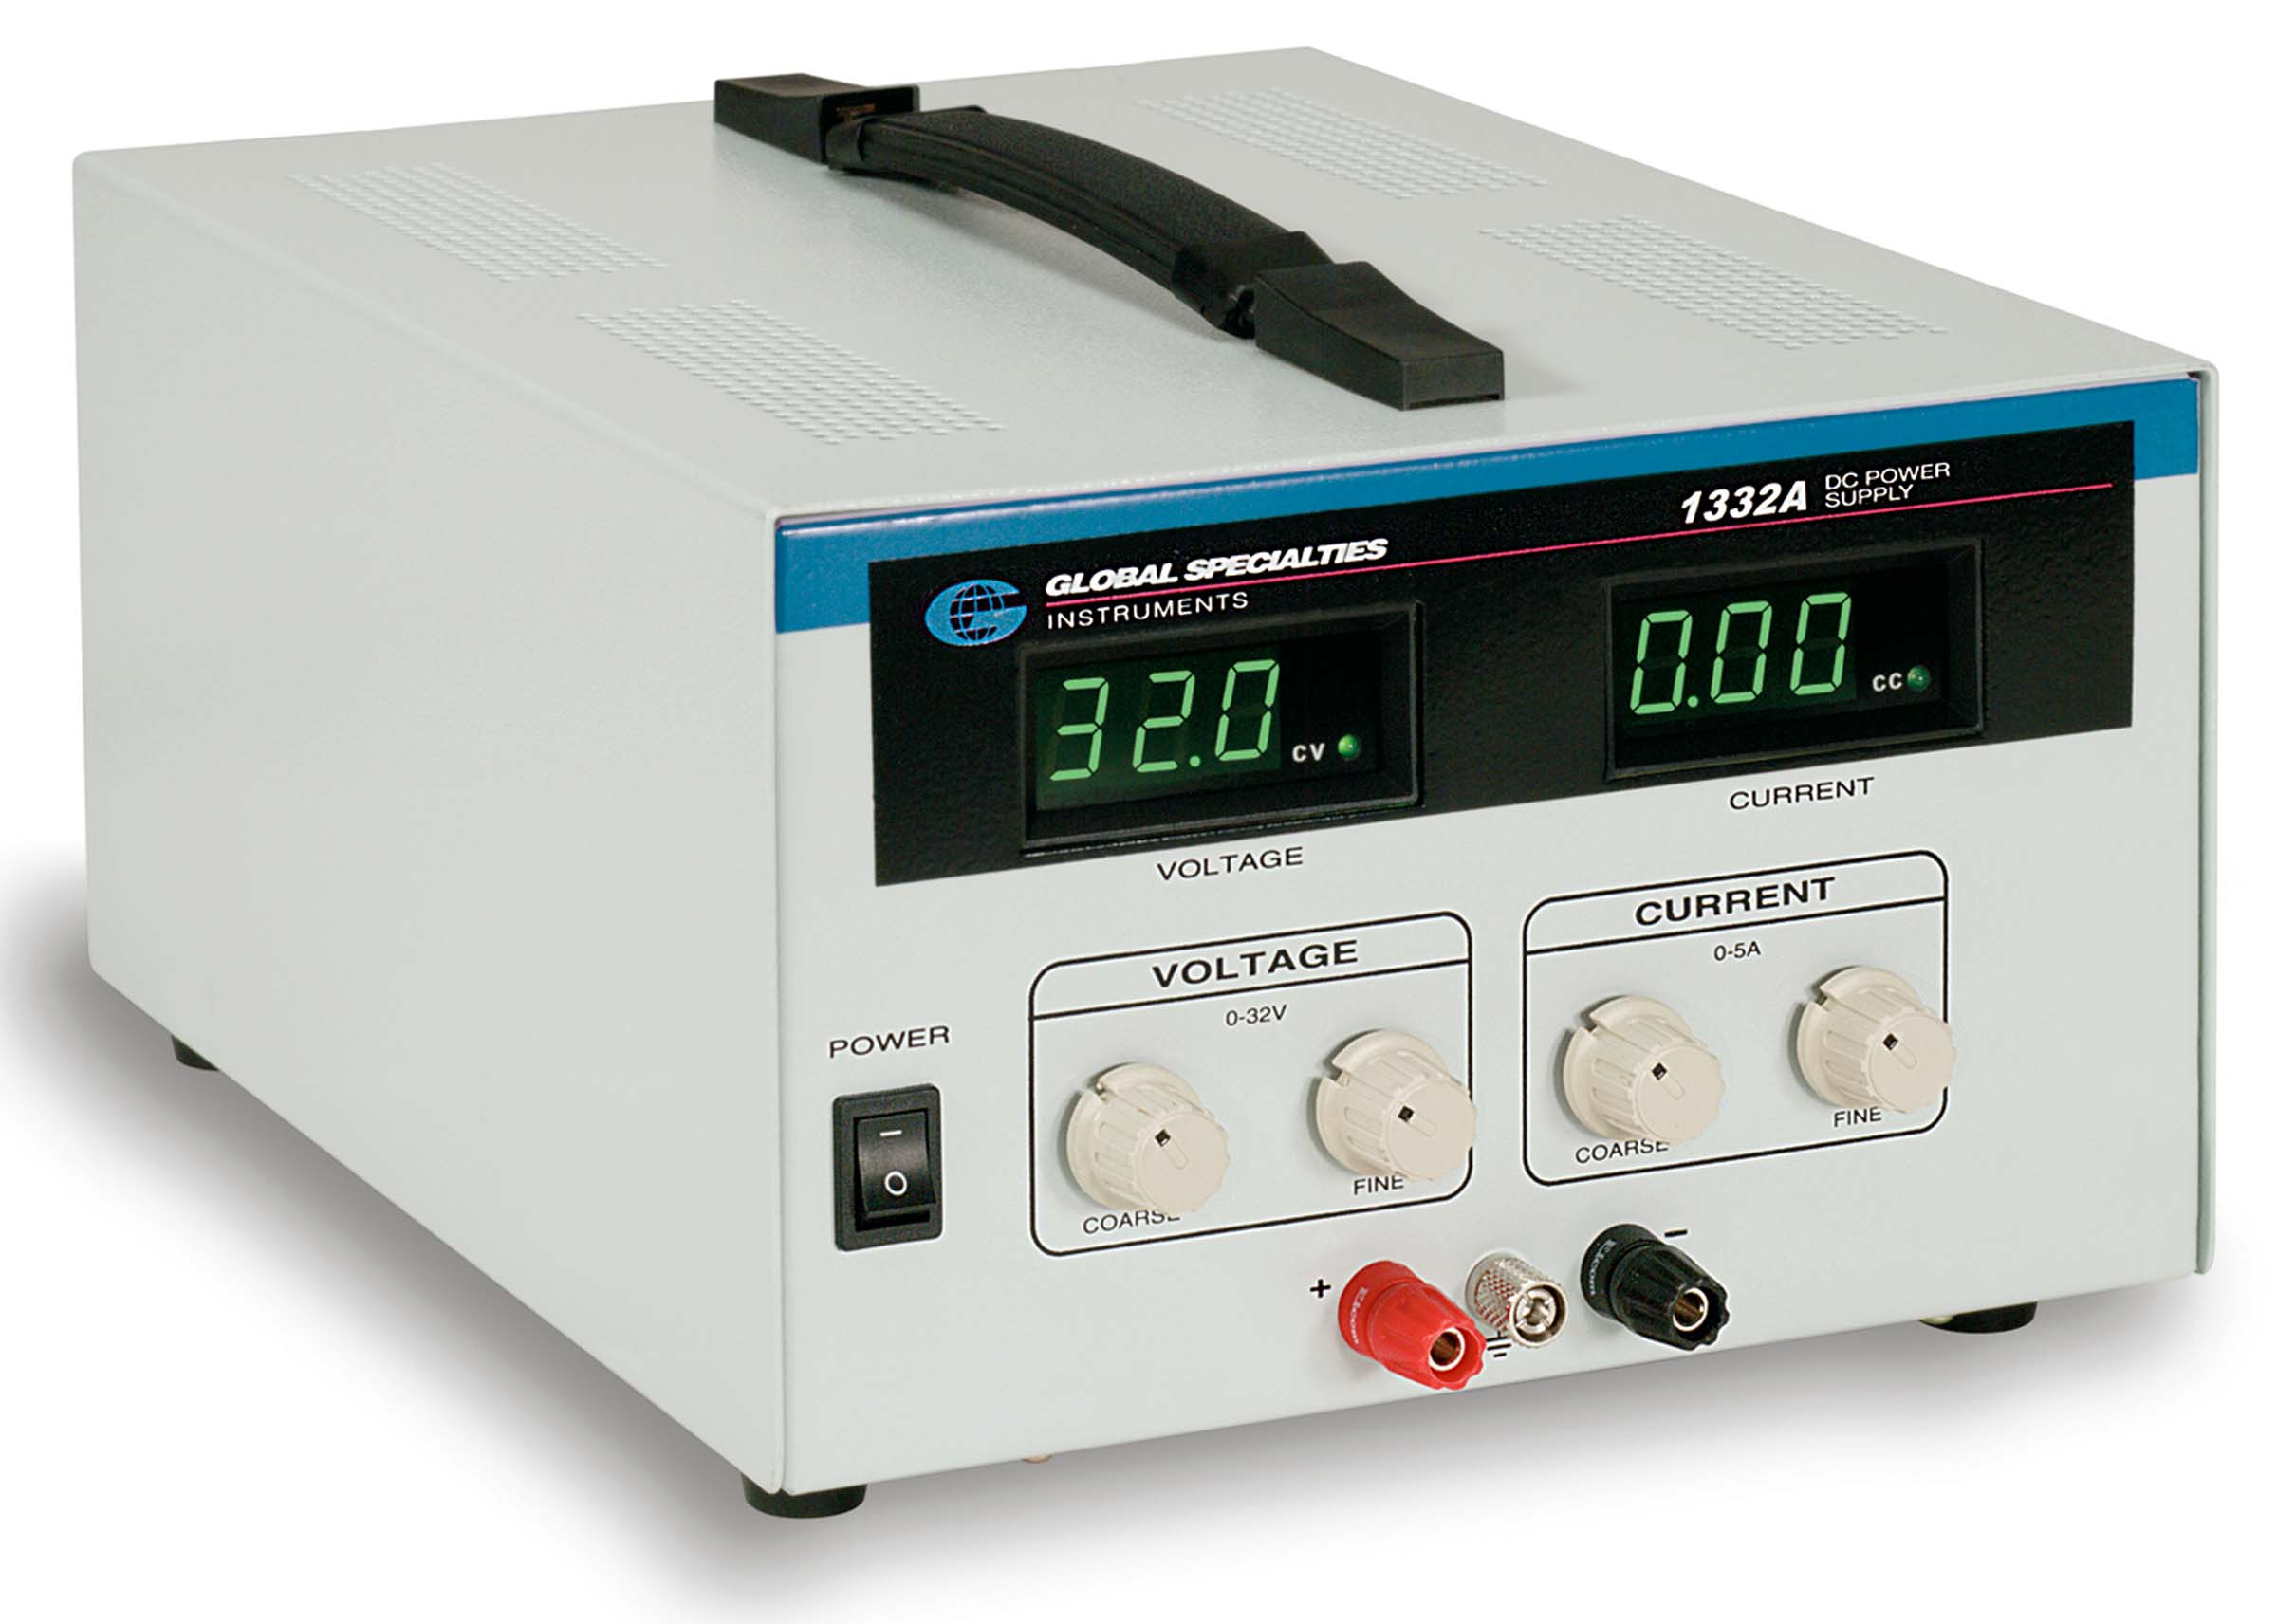 Click to preview image for the Global Specialties 1332A DC Power Supply: 0-32V, 0-5A